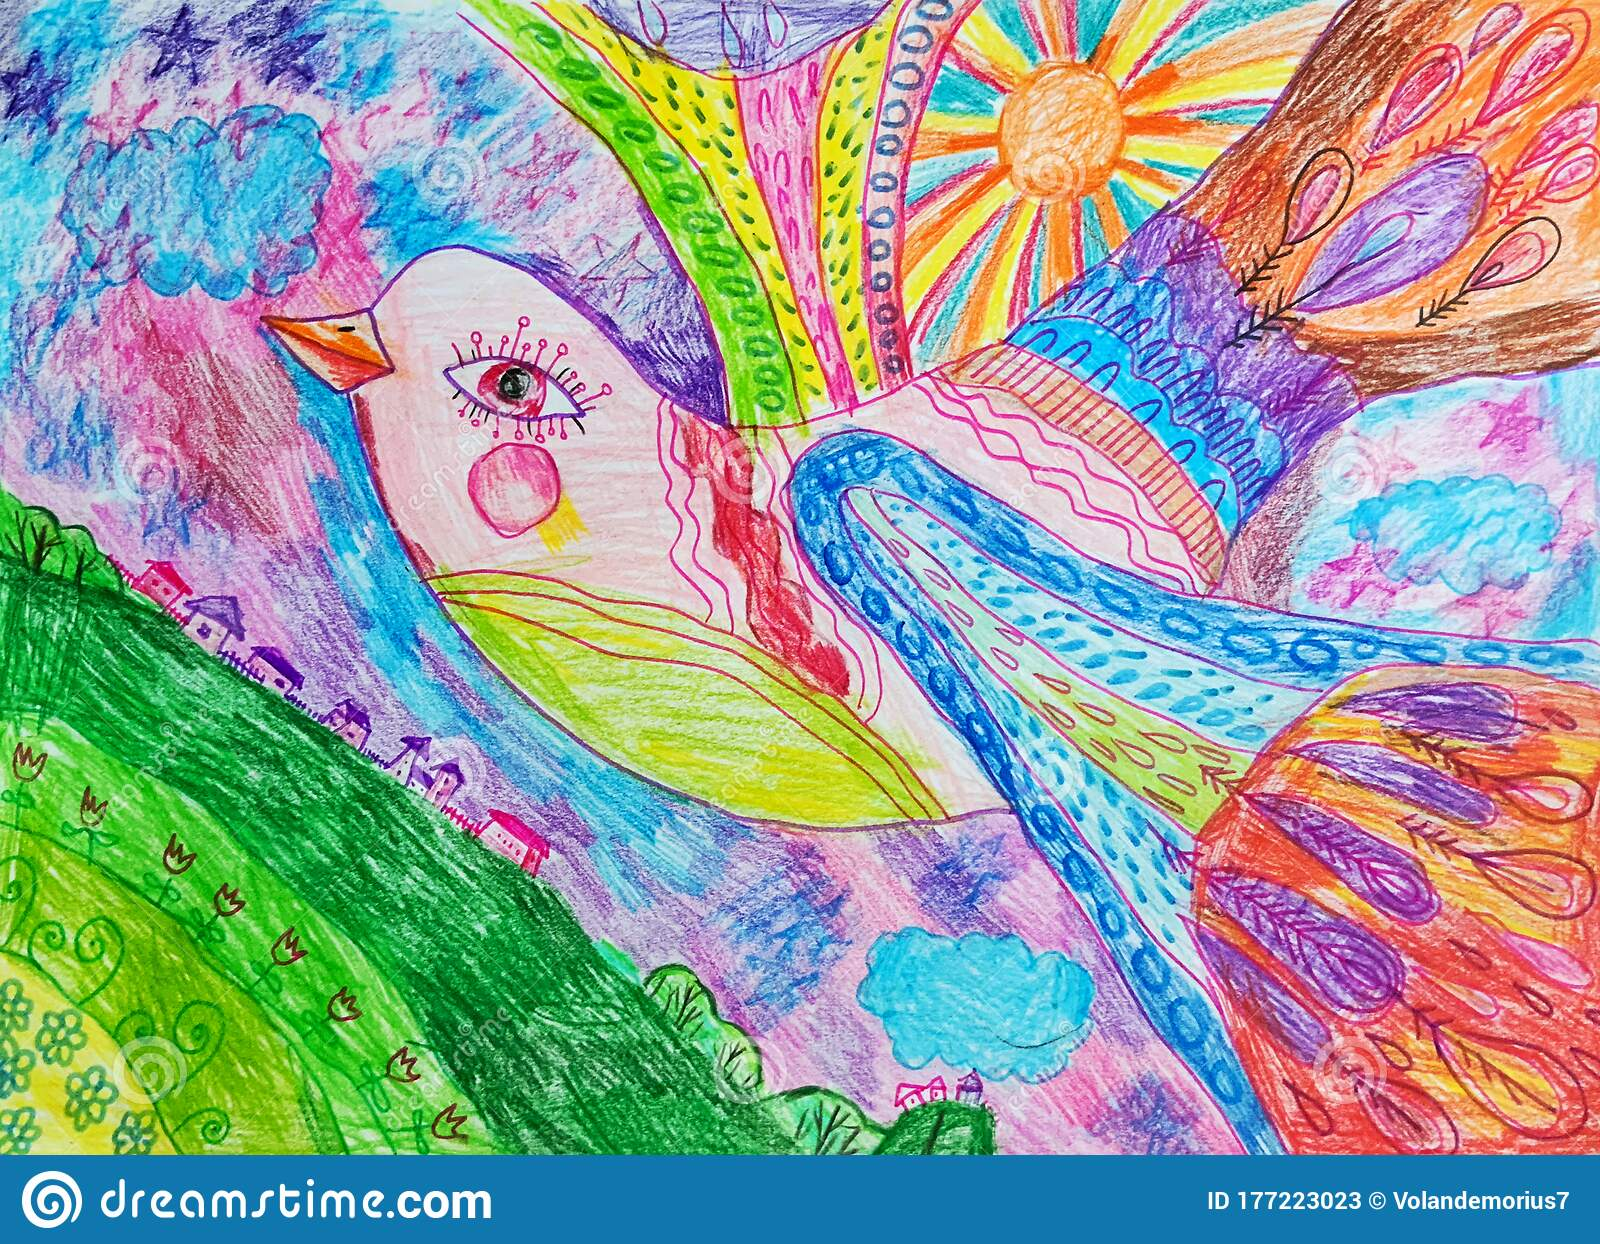 Bird Drawn With Colored Pencils Children S Drawing Stock Illustration Illustration Of Colorful Bird 177223023